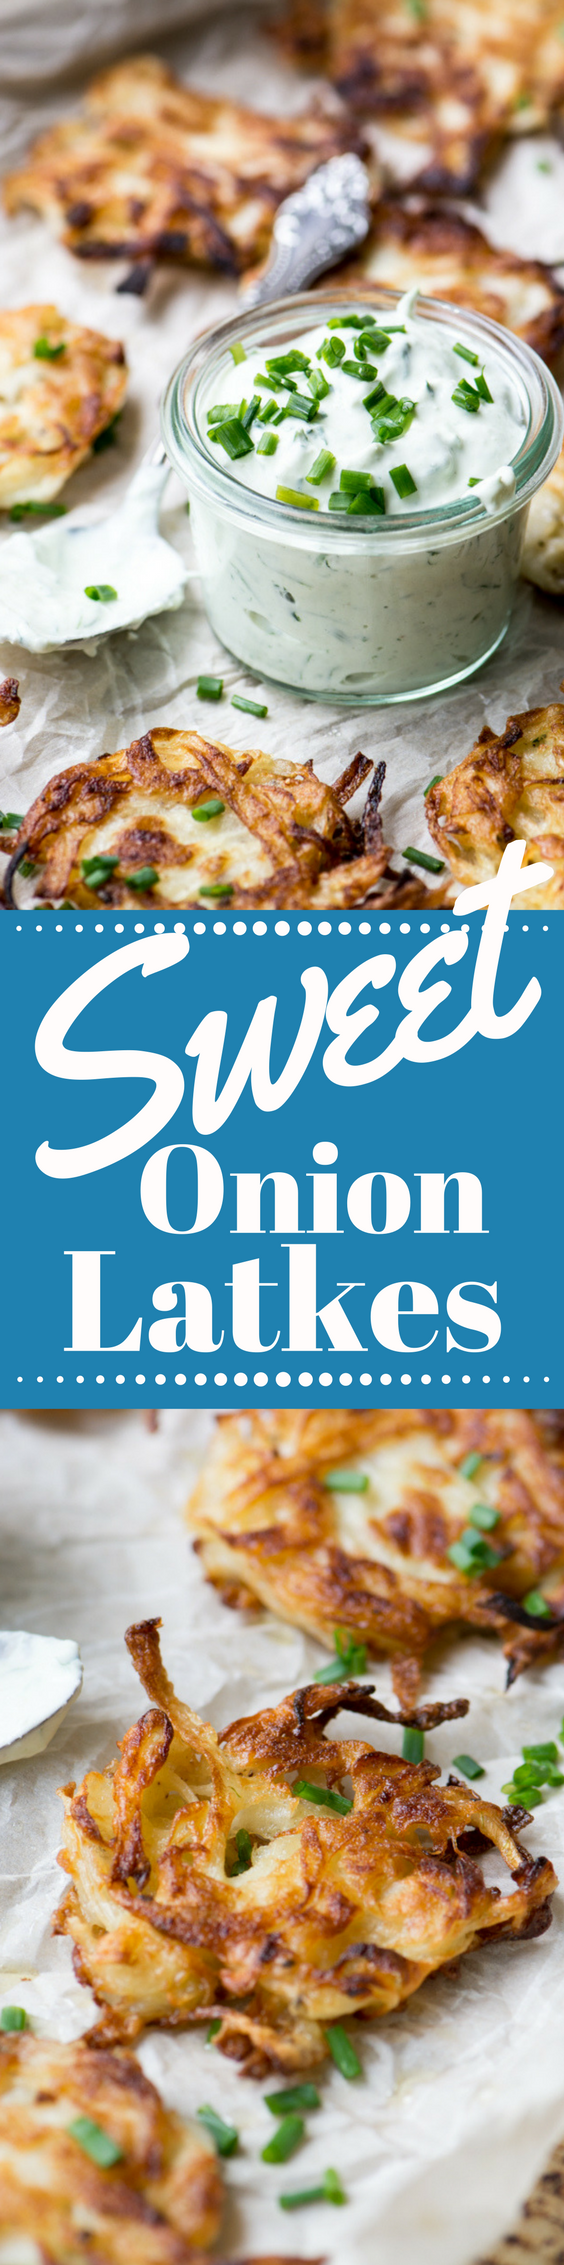 Sweet Onion Latkes with Chive Sour Cream ~ be forewarned ~ the aroma of these amazing latkes sizzling on the stove will draw crowds! #latkes #sweetonions #vidaliaonions #mauionions #Passover #passoverrecipe #hanukkah #hanukkahrecipe #hanukkahfood #breakfast #Jewishrecipes #fritters #breakfast #brunch